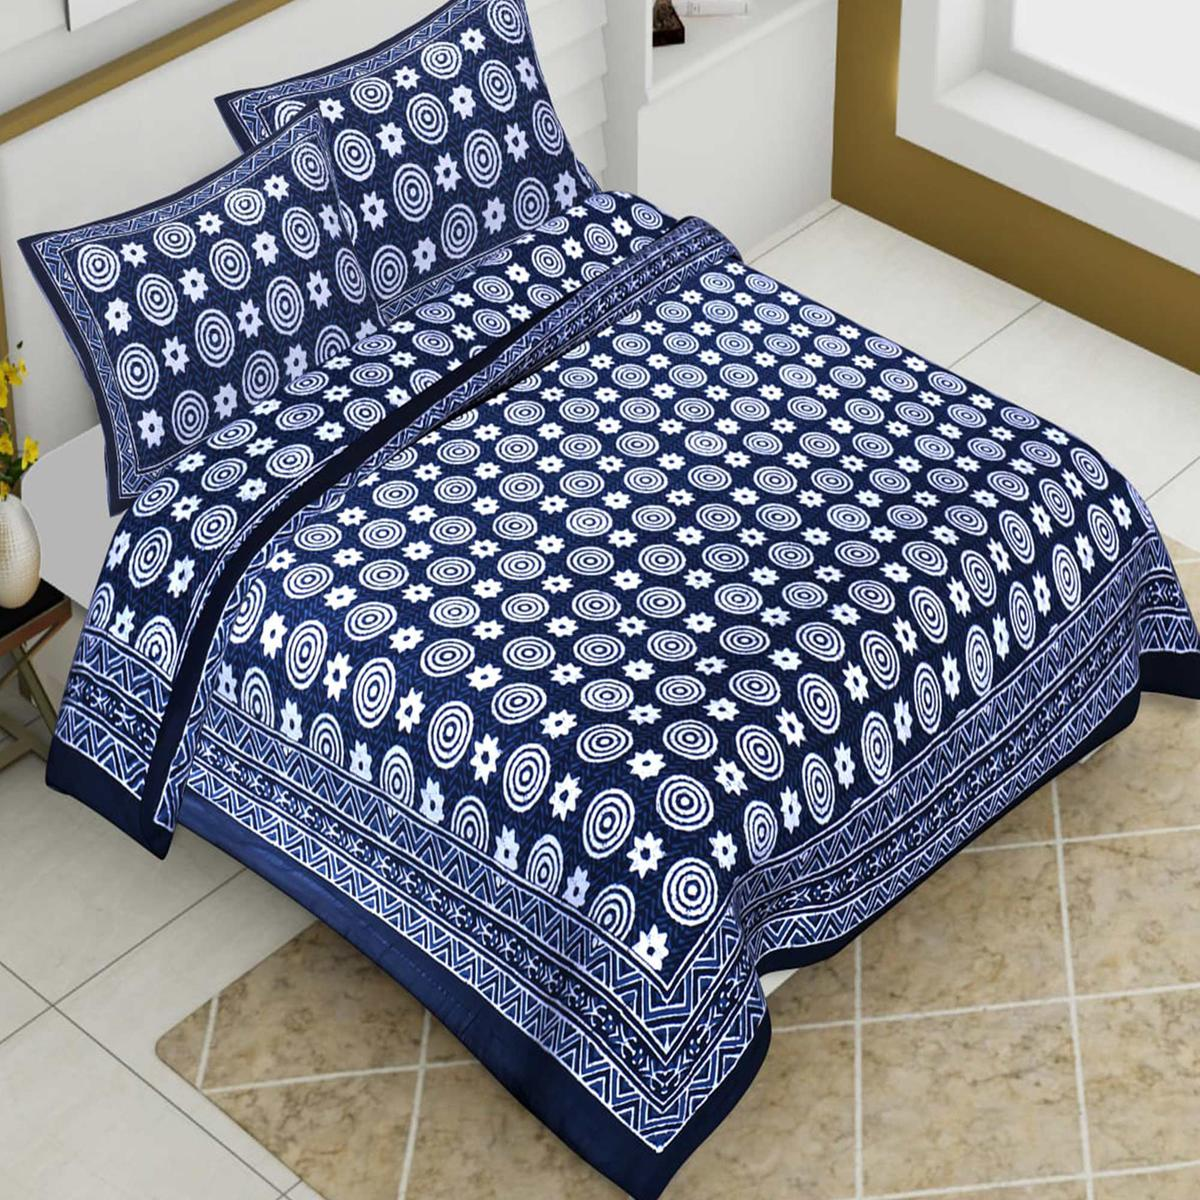 Pooja Fashion - Navy Blue Colored Printed King Cotton Bedsheet With 2 Pillow Cover